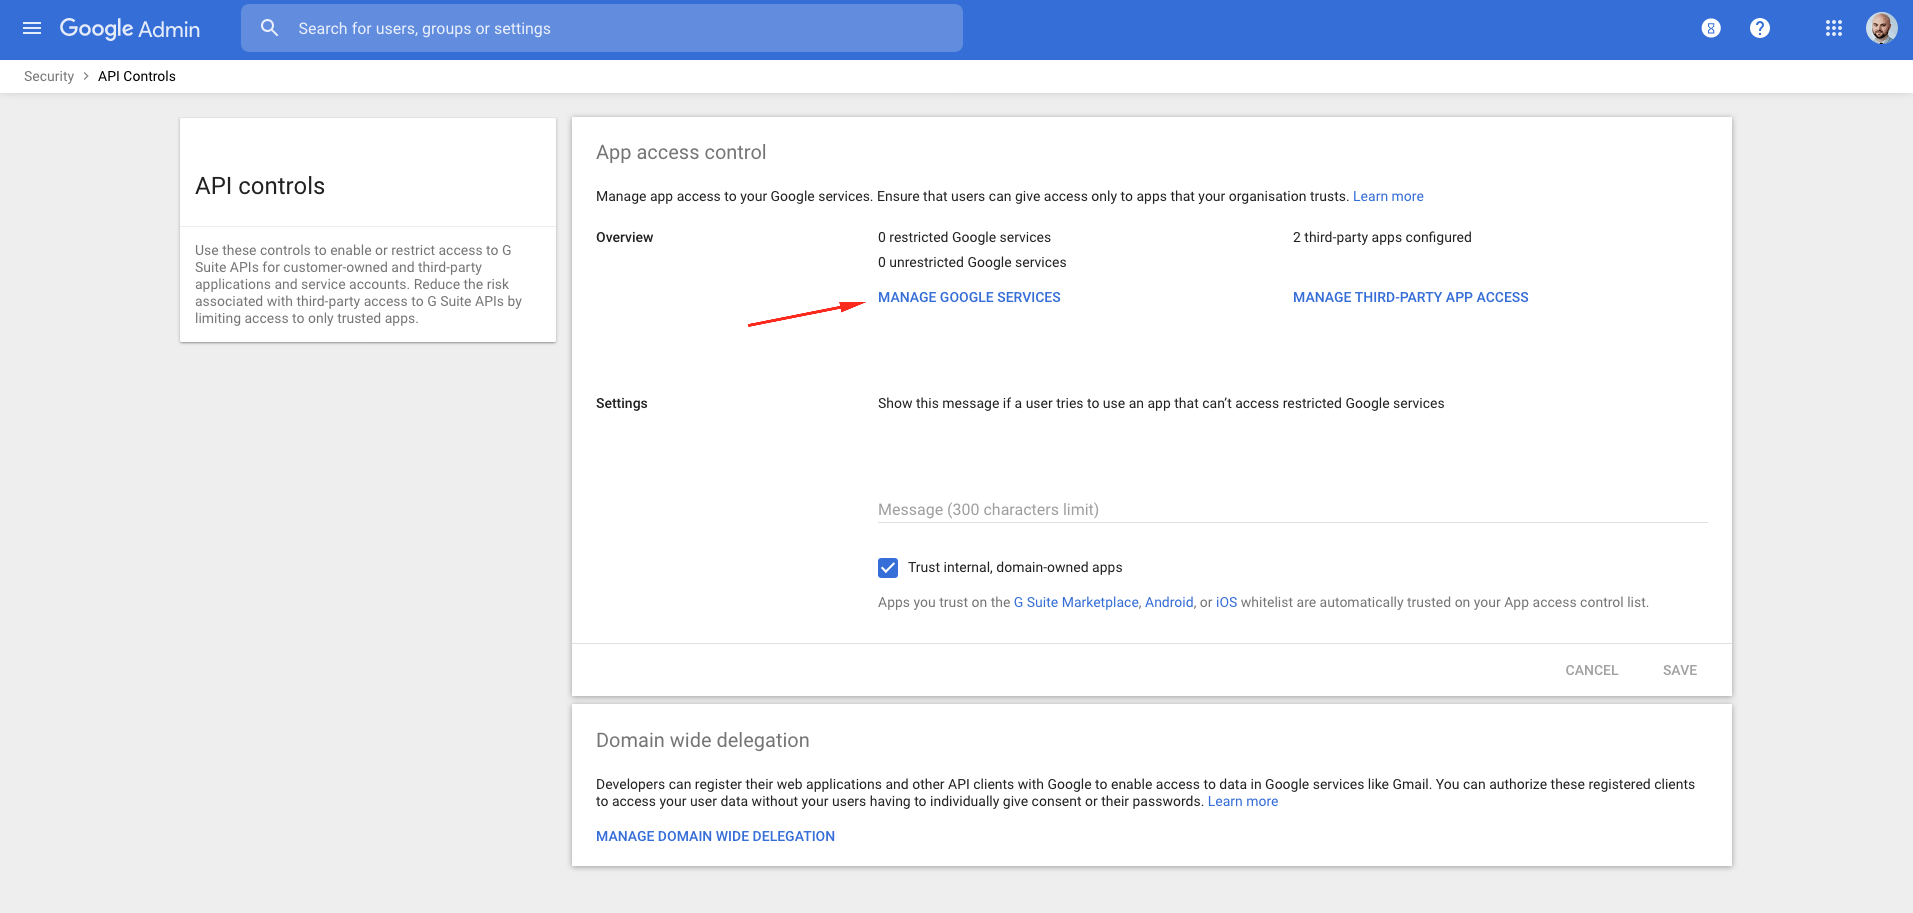 managing google services in g suite